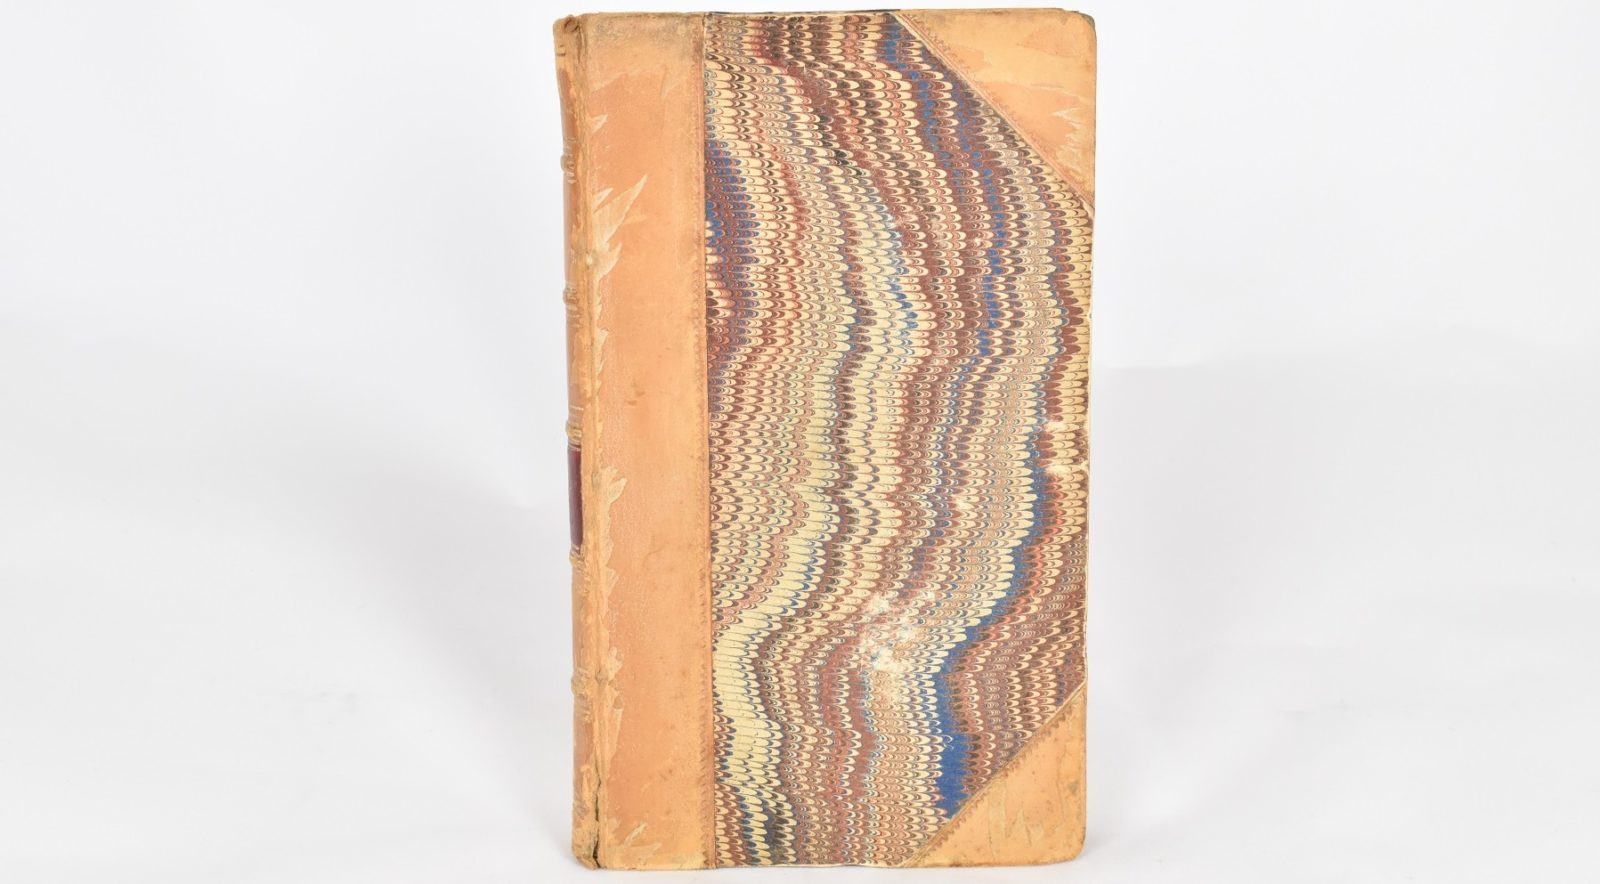 First edition of Pride and Prejudice, marbled cover with leather binding